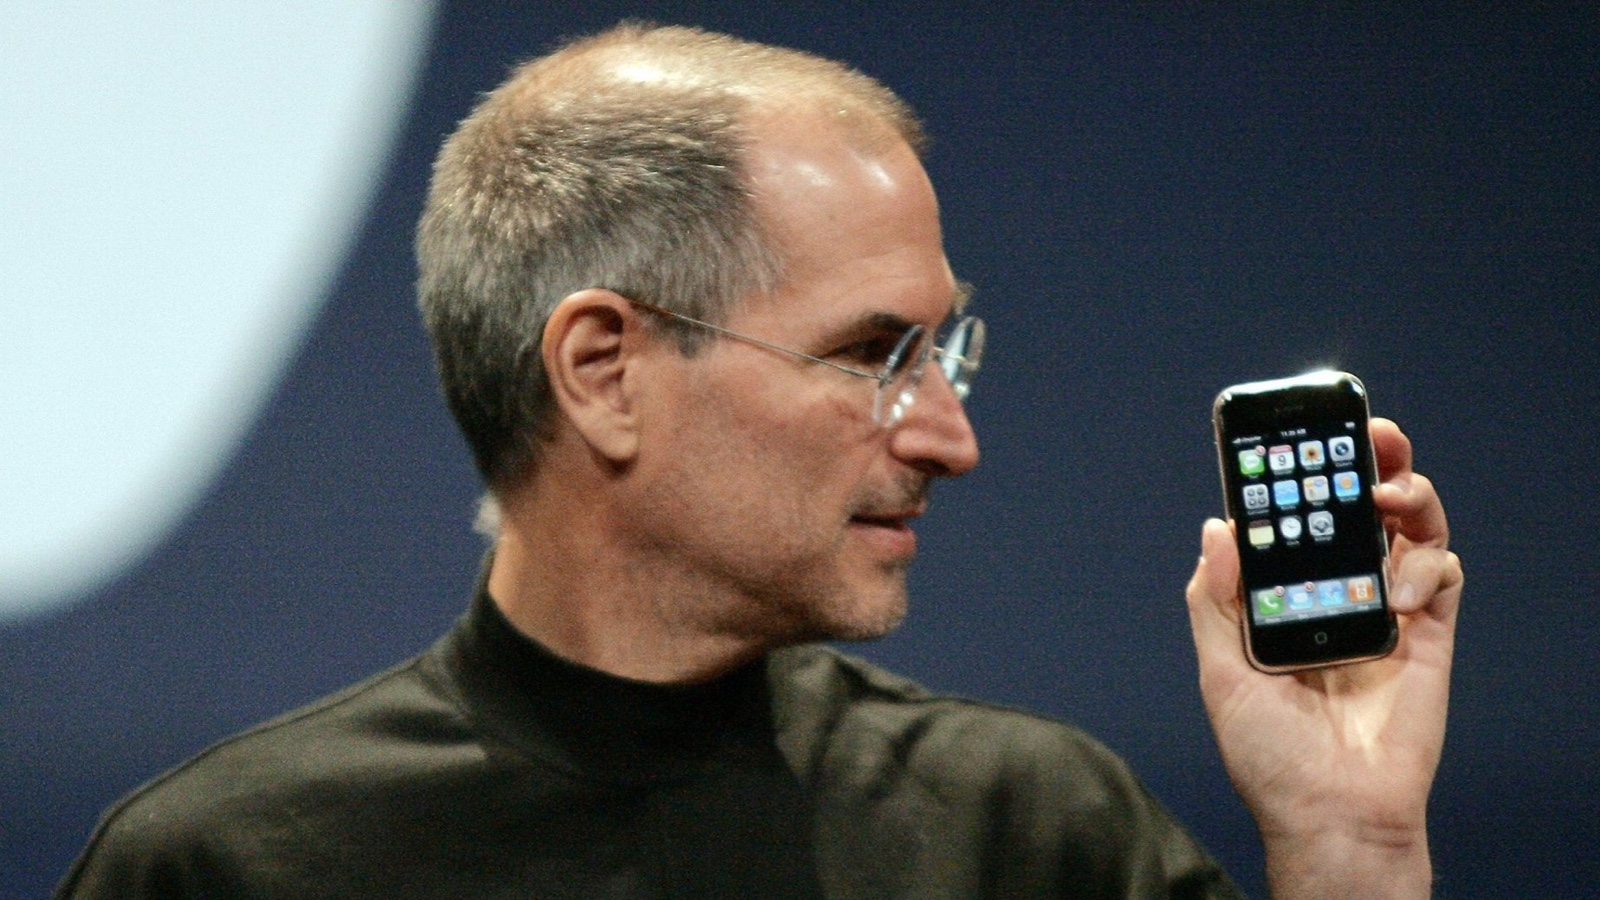 Steve Jobs iphone introduction has helped the UX industry